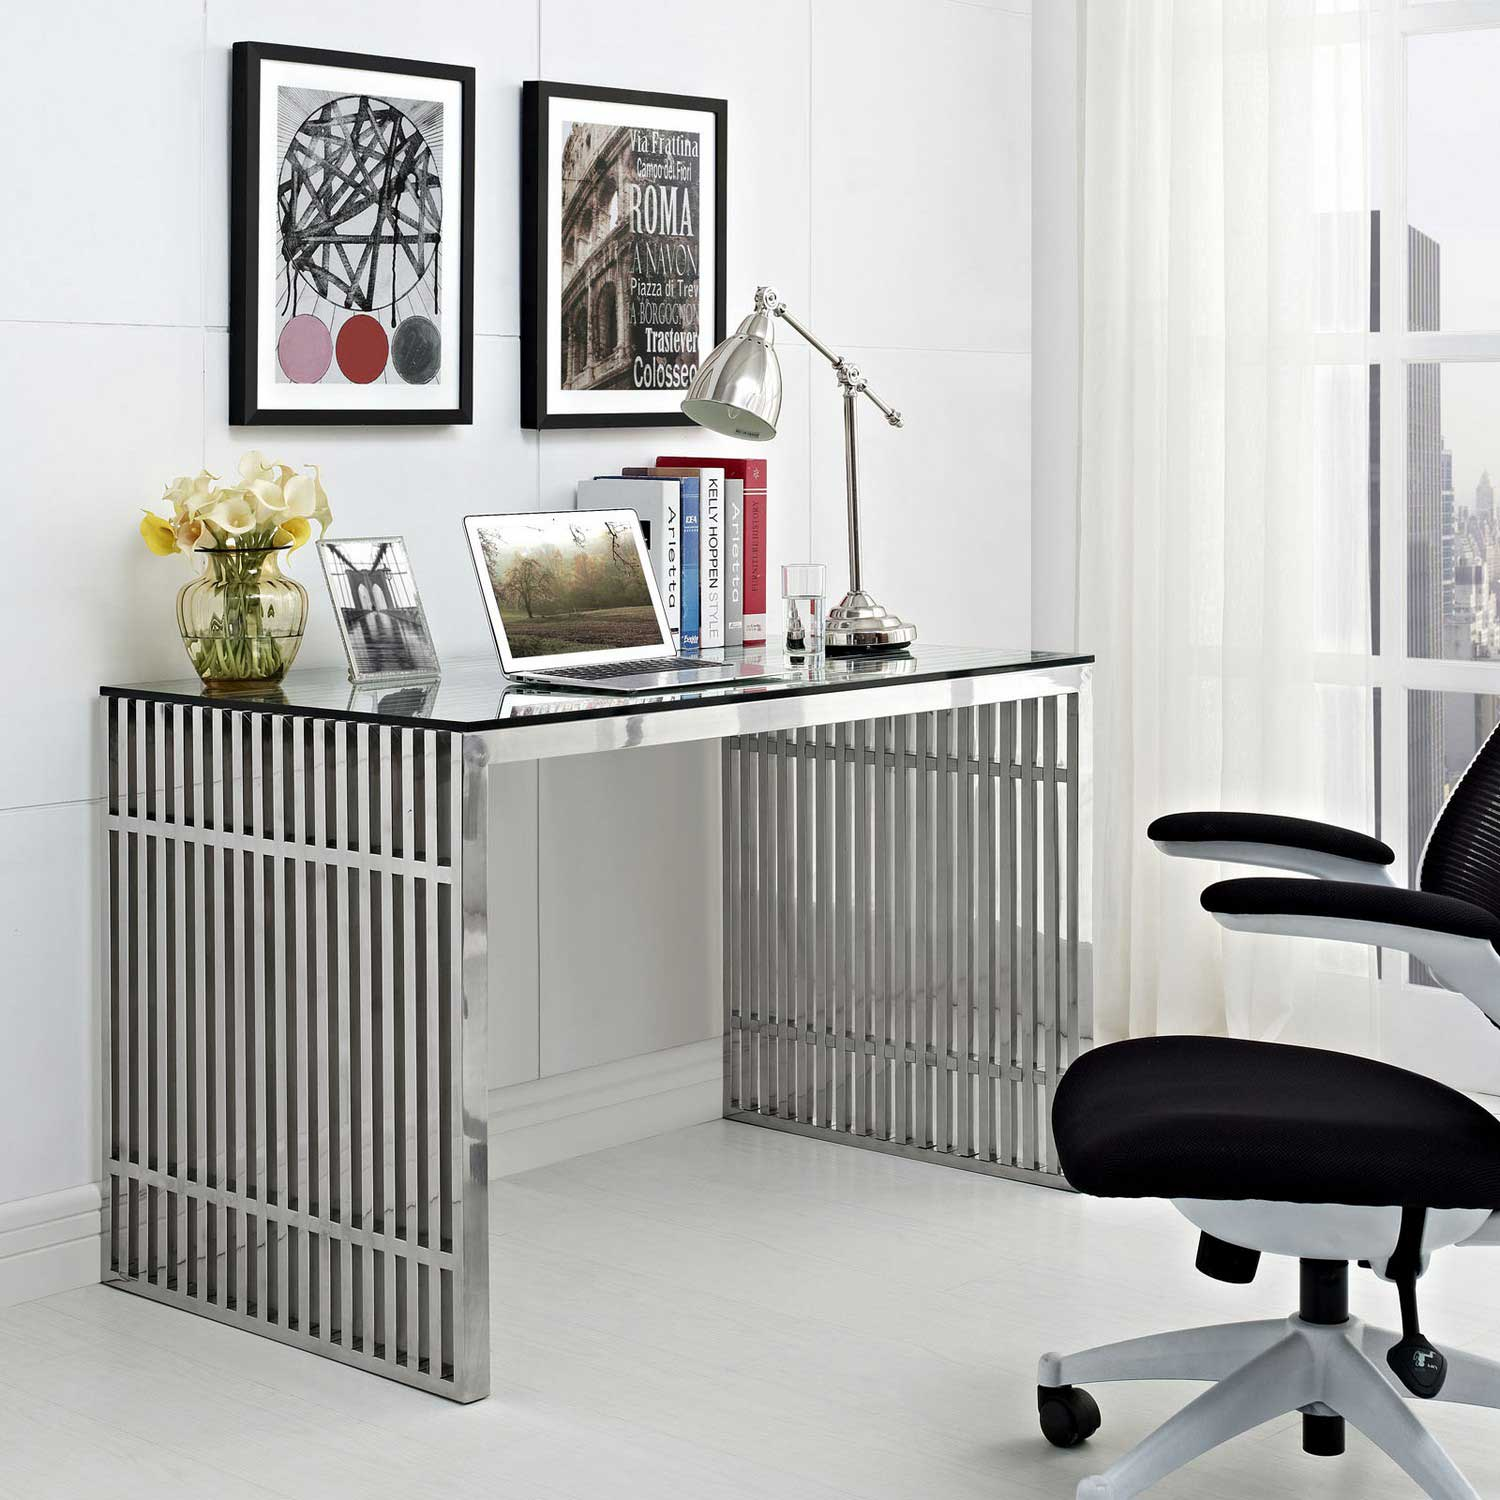 Modway Gridiron Stainless Steel Office Desk - Silver